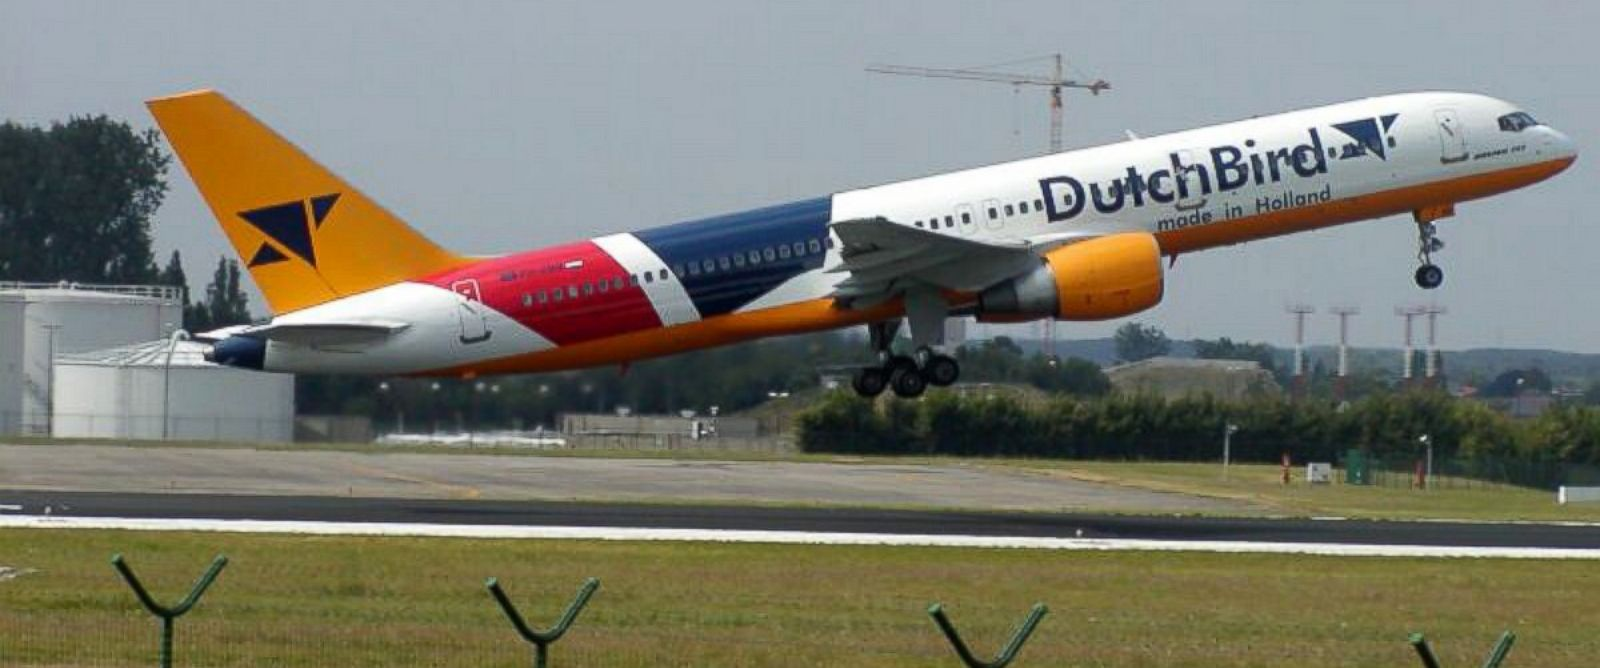 PHOTO: Dutchbird was a charter airliner based in Amsterdam that no longer operates.